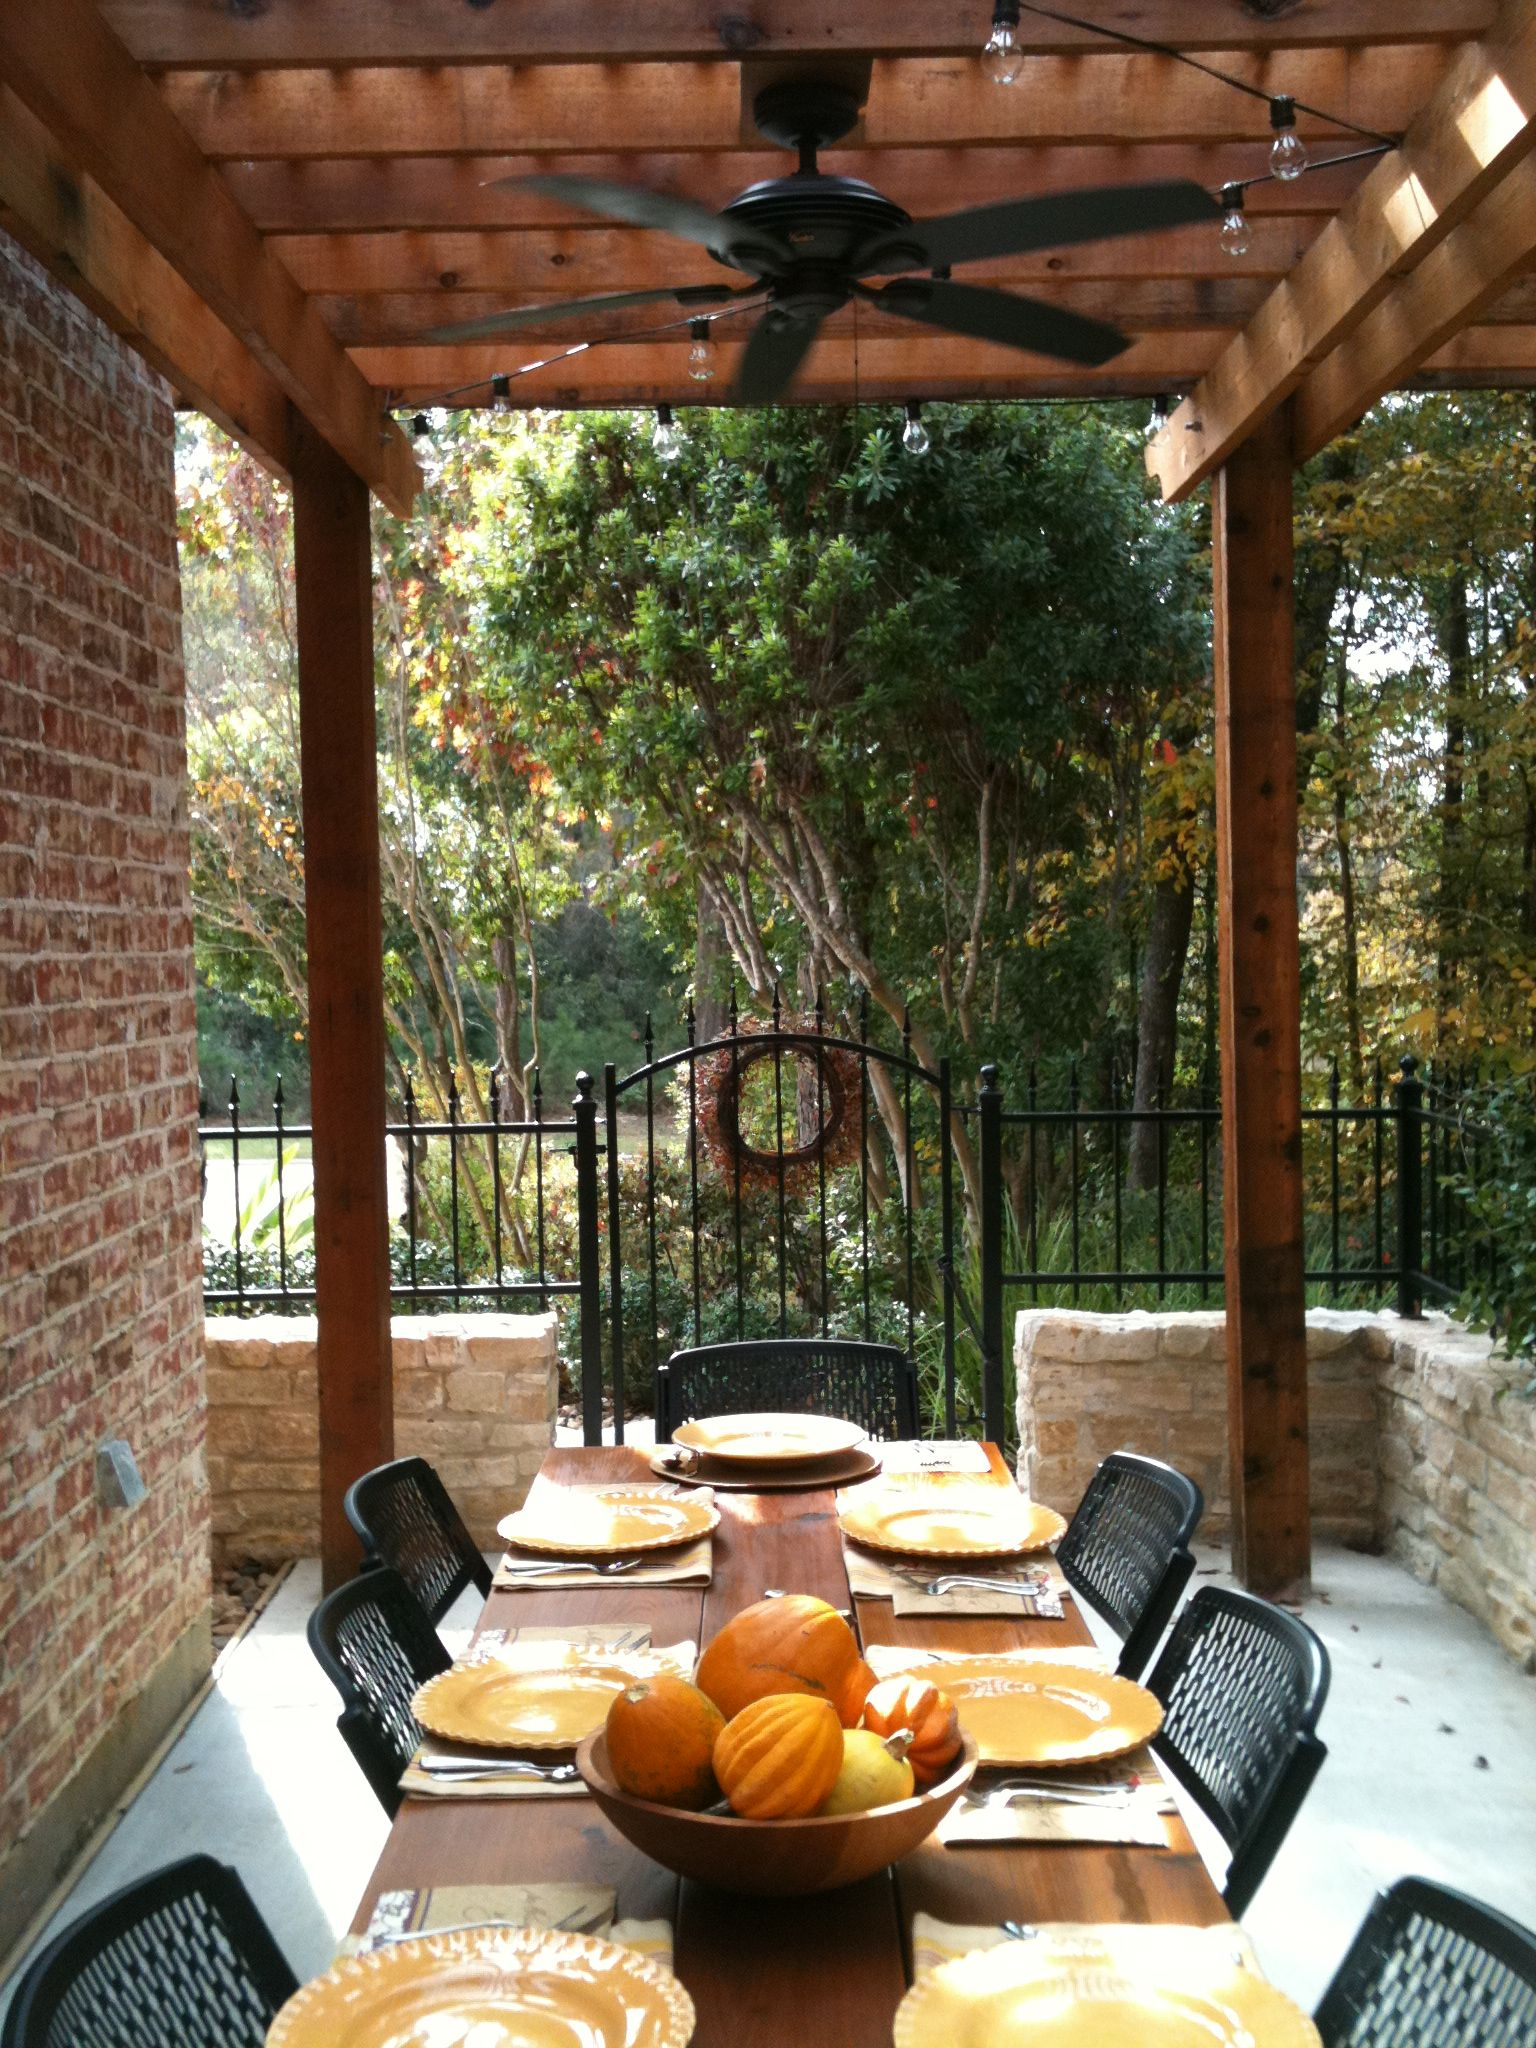 Outdoor Dining Room With Rustic Table 10. Patio